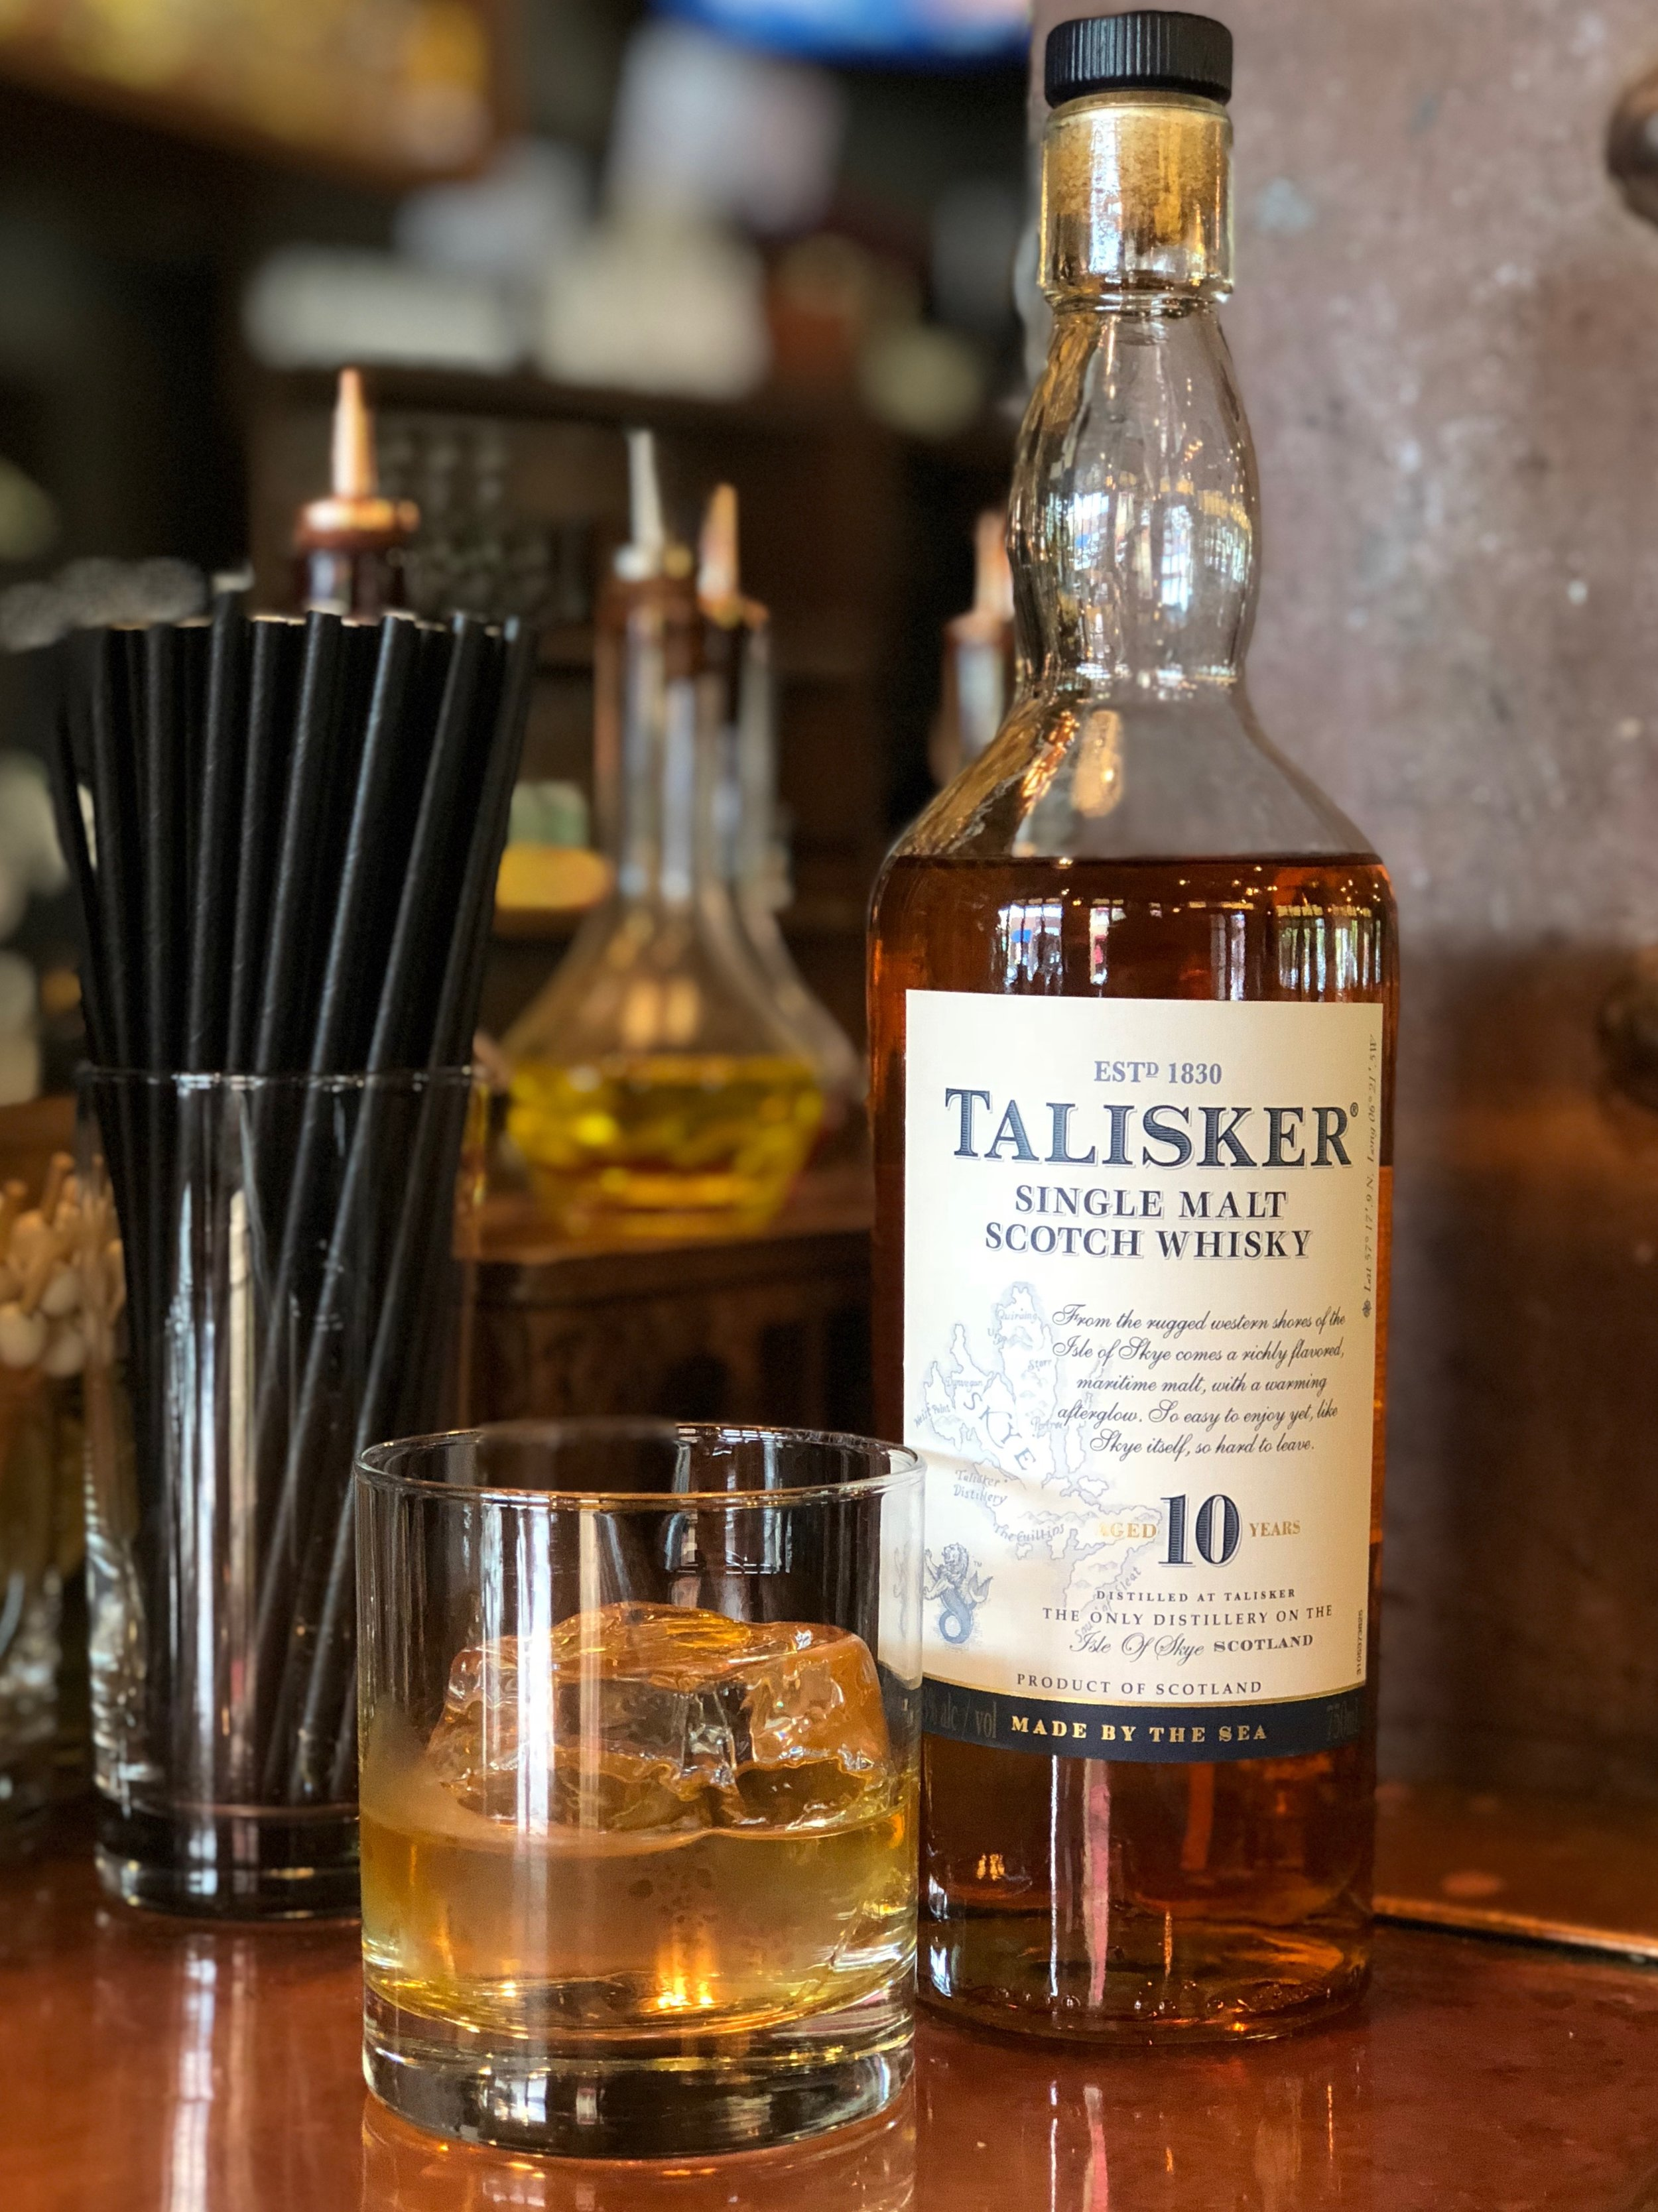 """Whatever would we do without Whiskey Wednesday? . This Wednesday we bring you a Single Malt Scotch Whiskey. This made by the sea scotch whiskey, Talisker 10 Years Old, is pungent with apple peels, smoke, and kippers on the nose and has a volcanic, peppery peat, barley, and lemon zest taste on the palate. """"It is the perfect companion for when the day is done"""". . All day Wednesday, all whiskeys $10/oz and under are 50% off! Come try this scotch whiskey for only $3.50! Cheers!"""